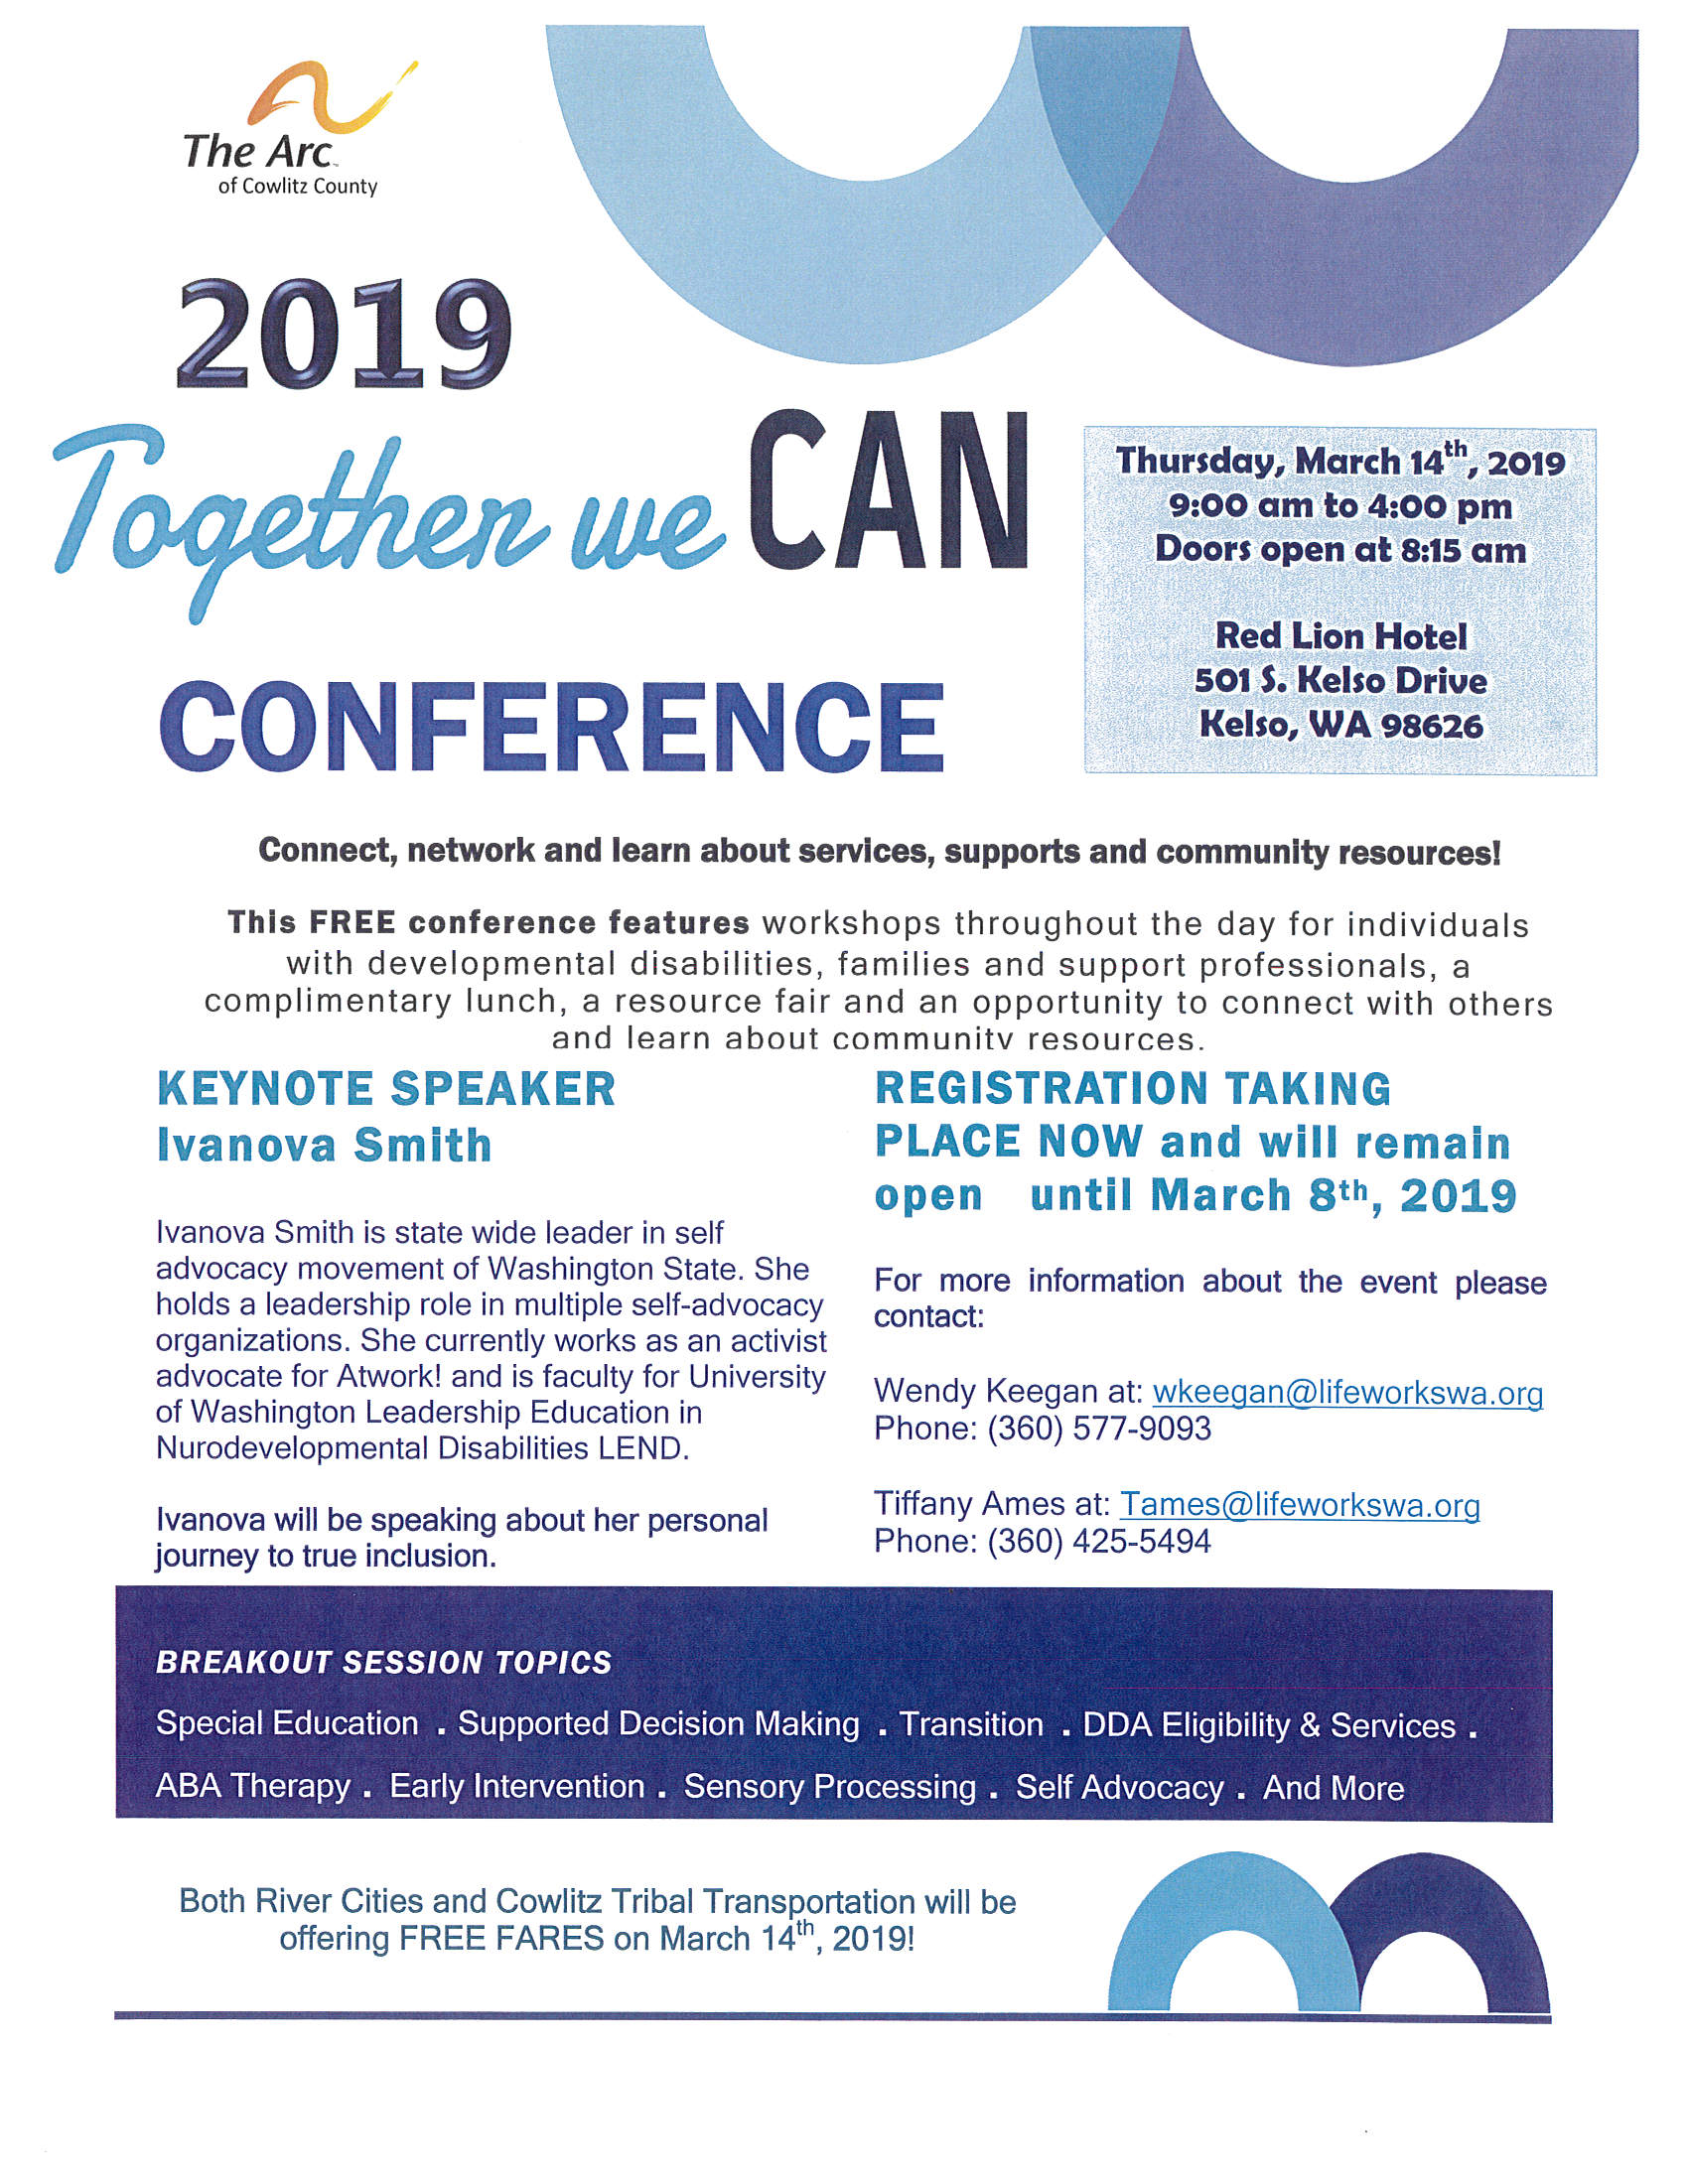 Together We Can Conference - The Arc of Cowlitz County